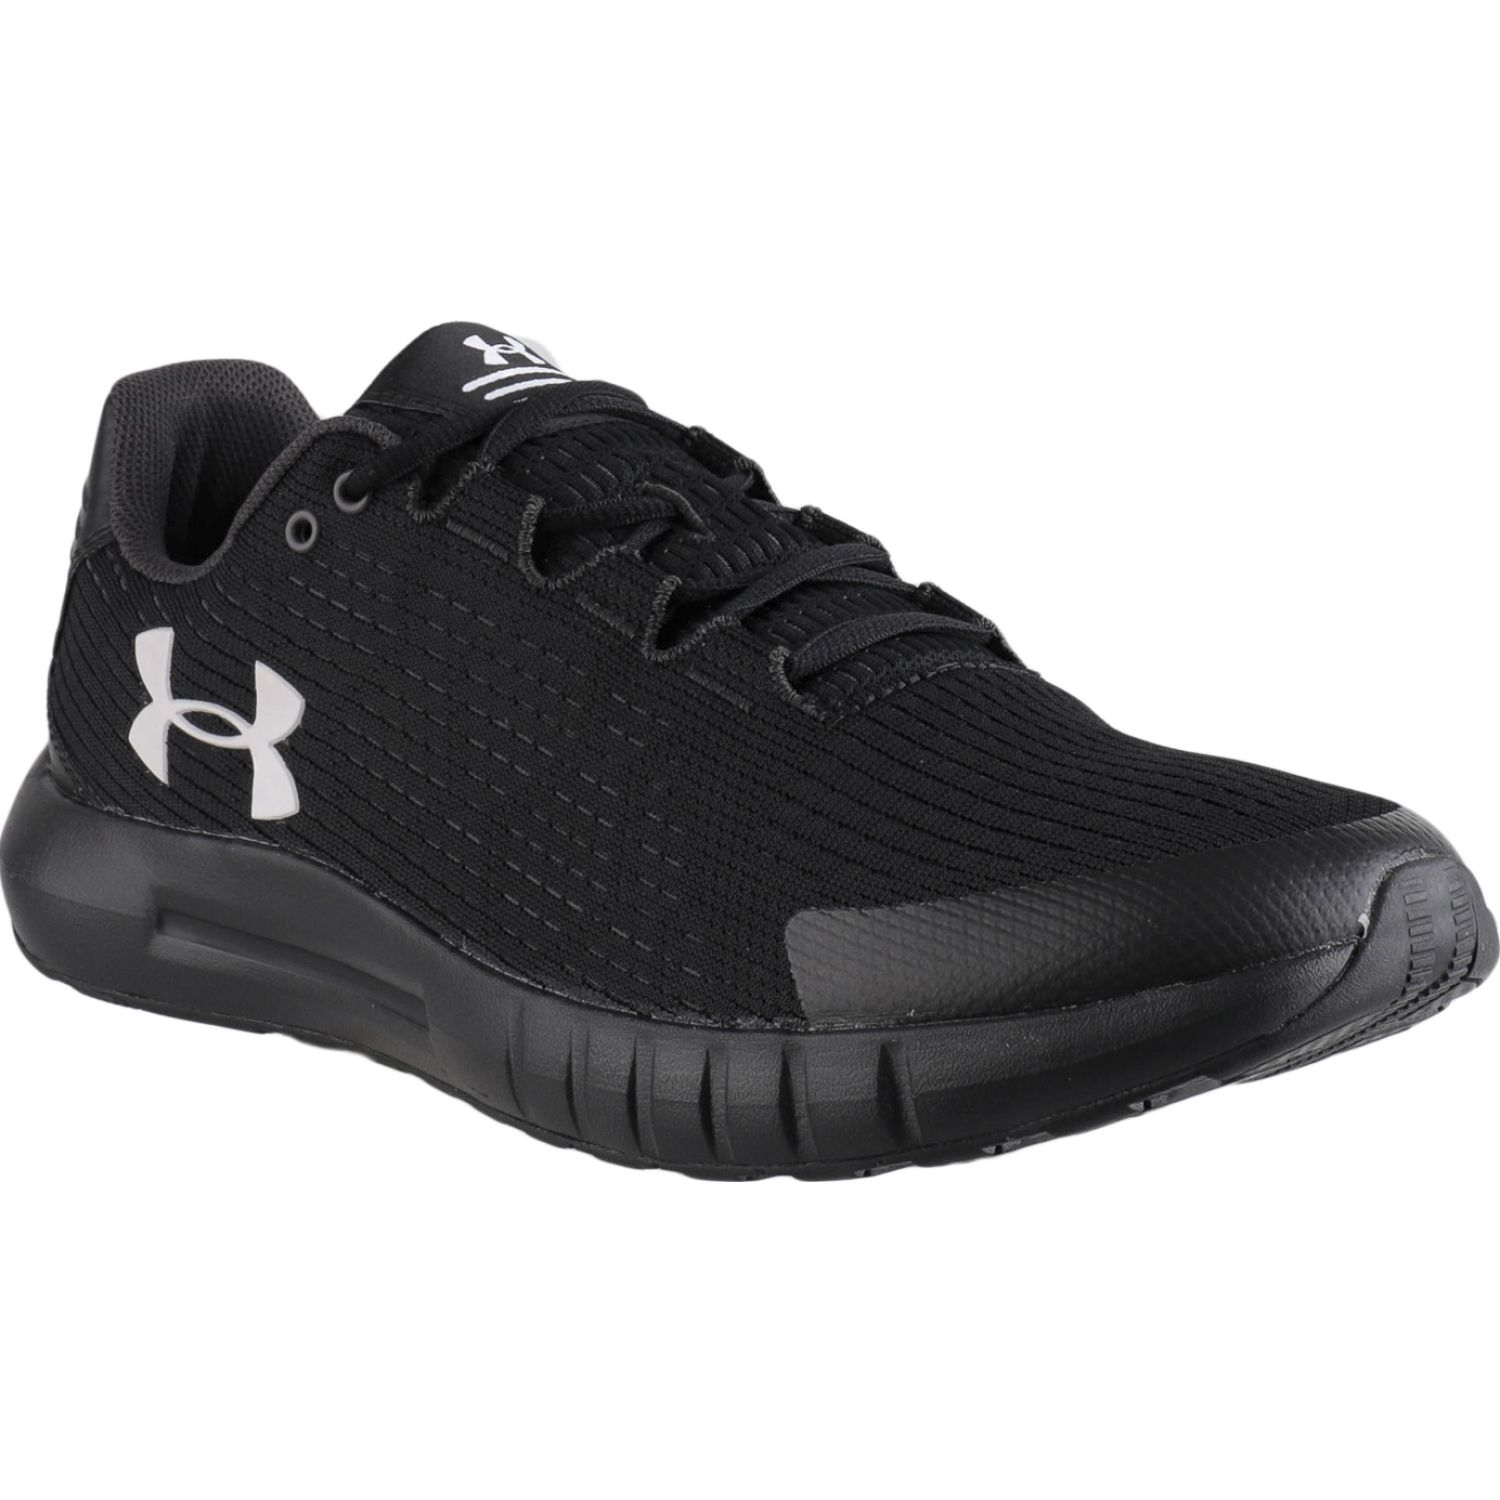 Under Armour Ua Micro G Pursuit Se Negro / blanco Calzado de correr